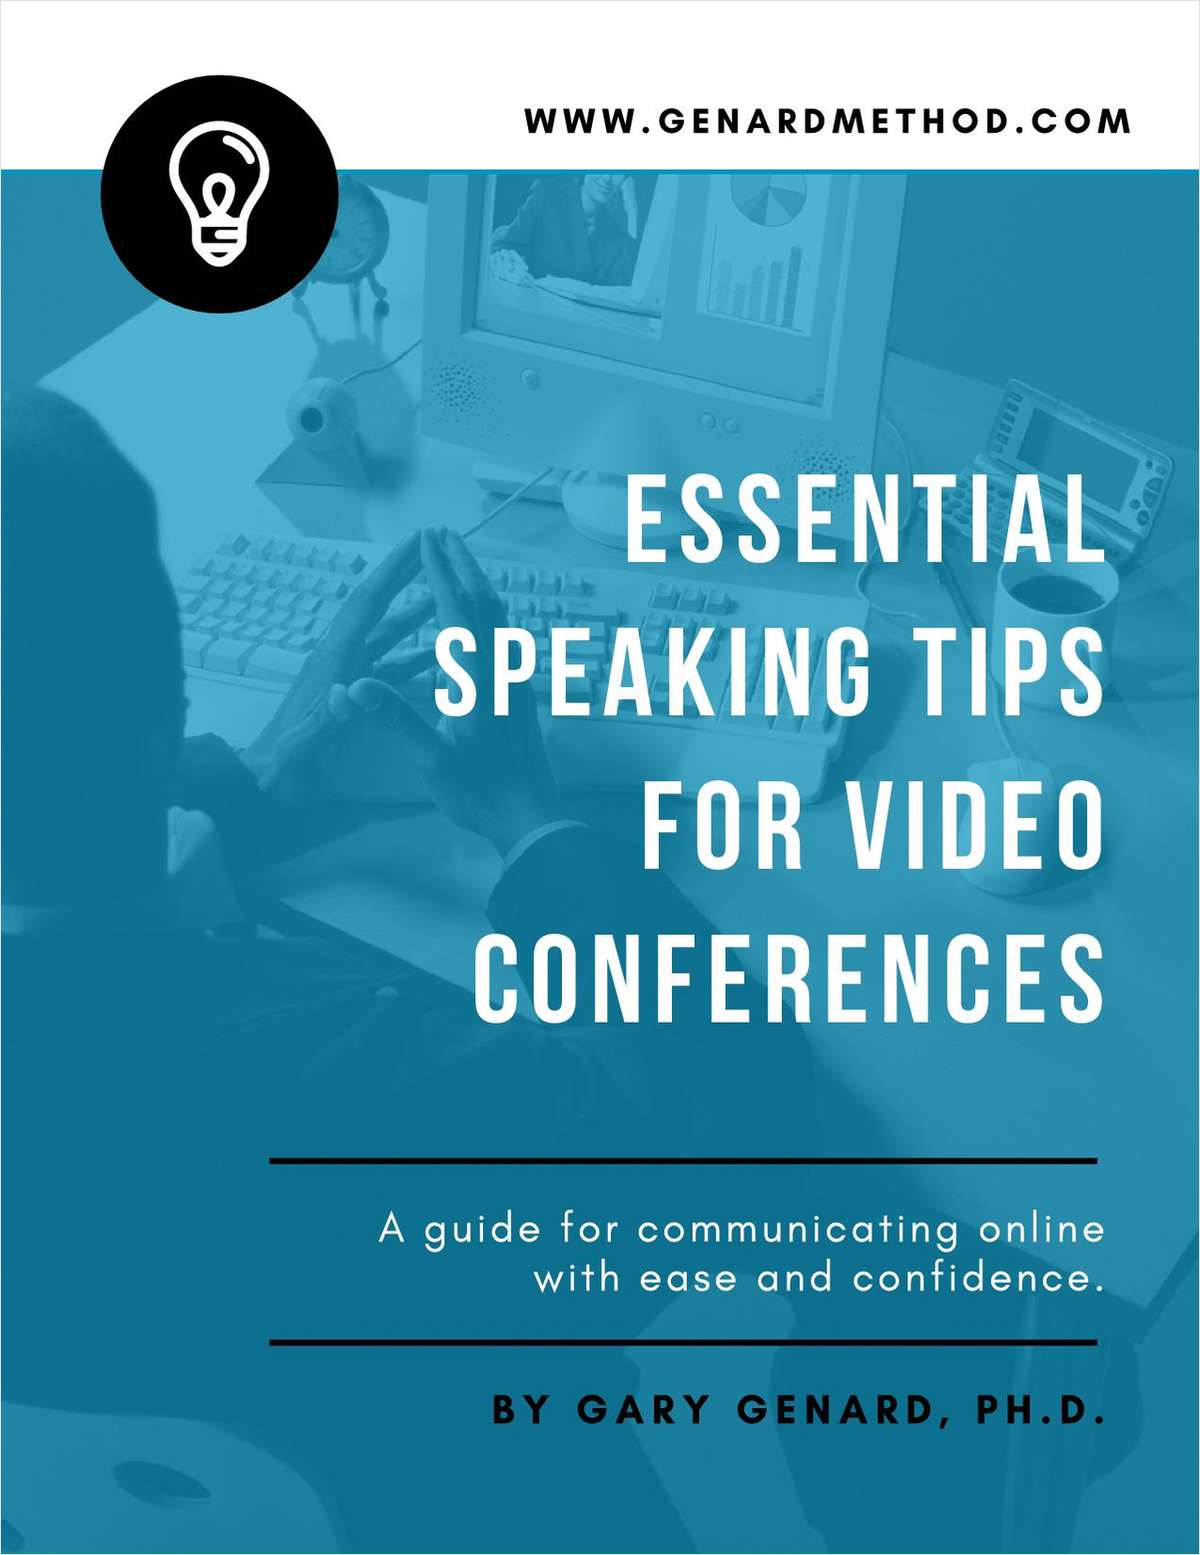 Essential Speaking Tips for Video Conferences